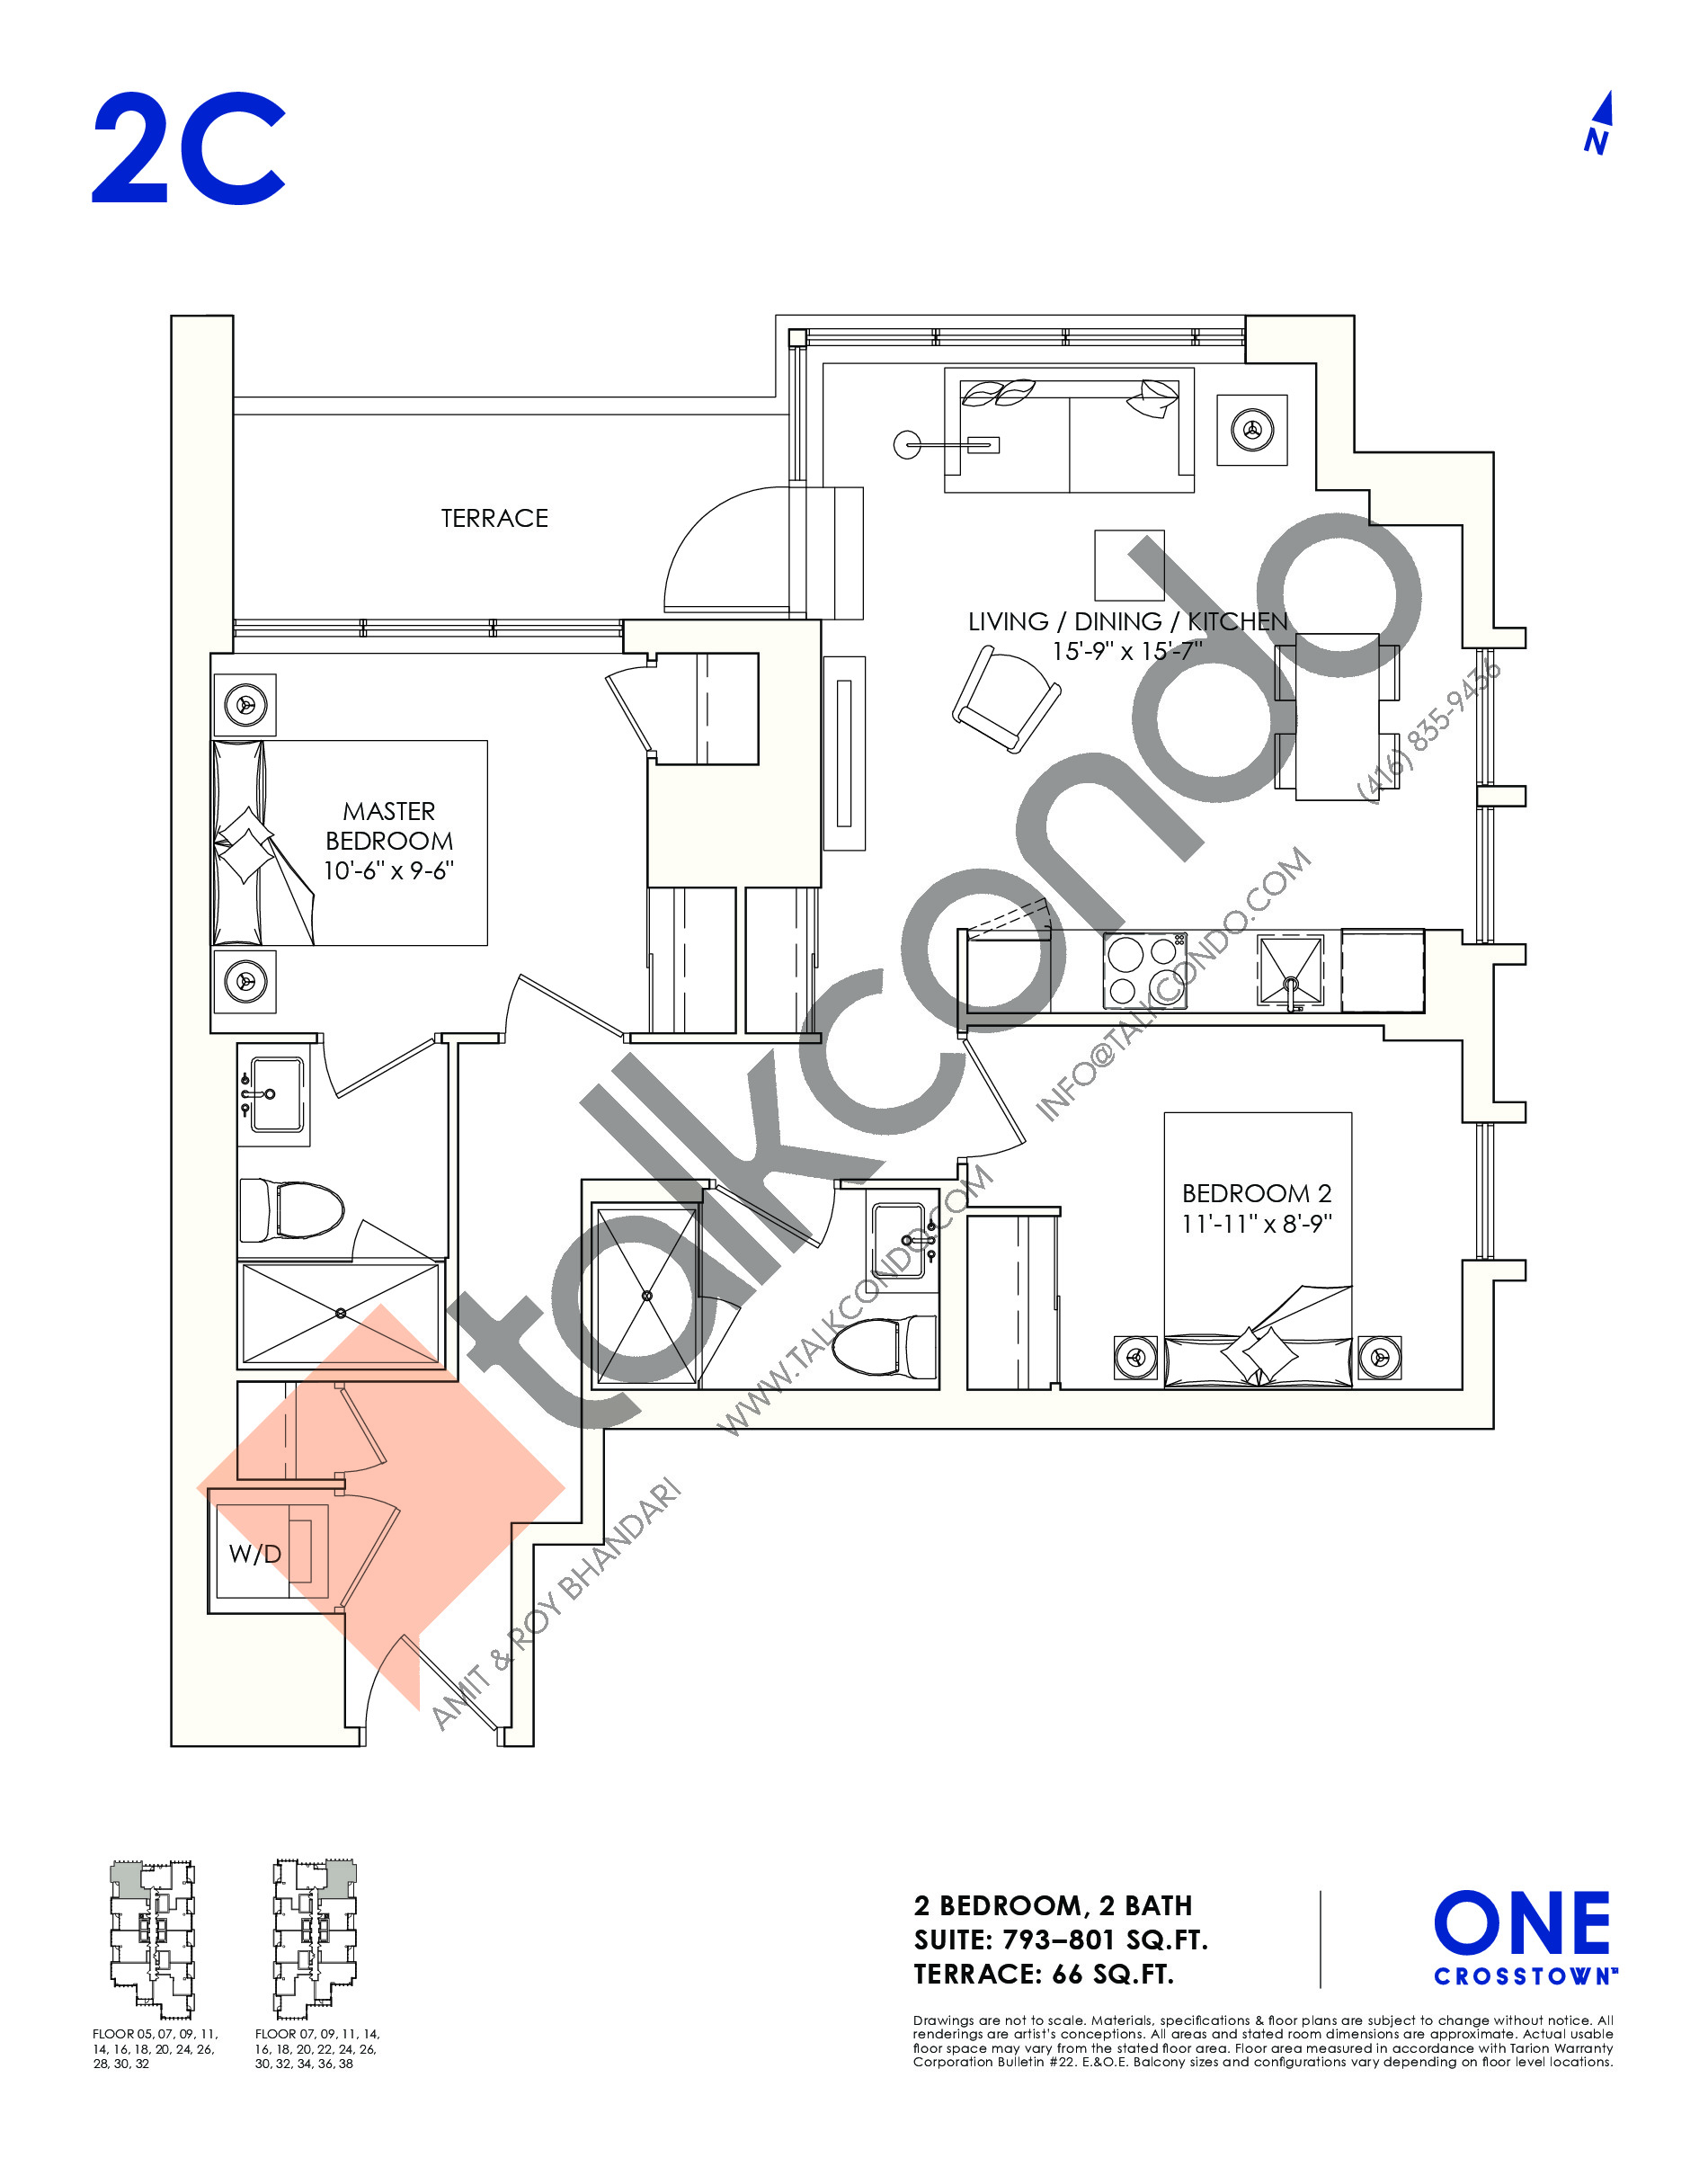 2C Floor Plan at One Crosstown Condos - 801 sq.ft